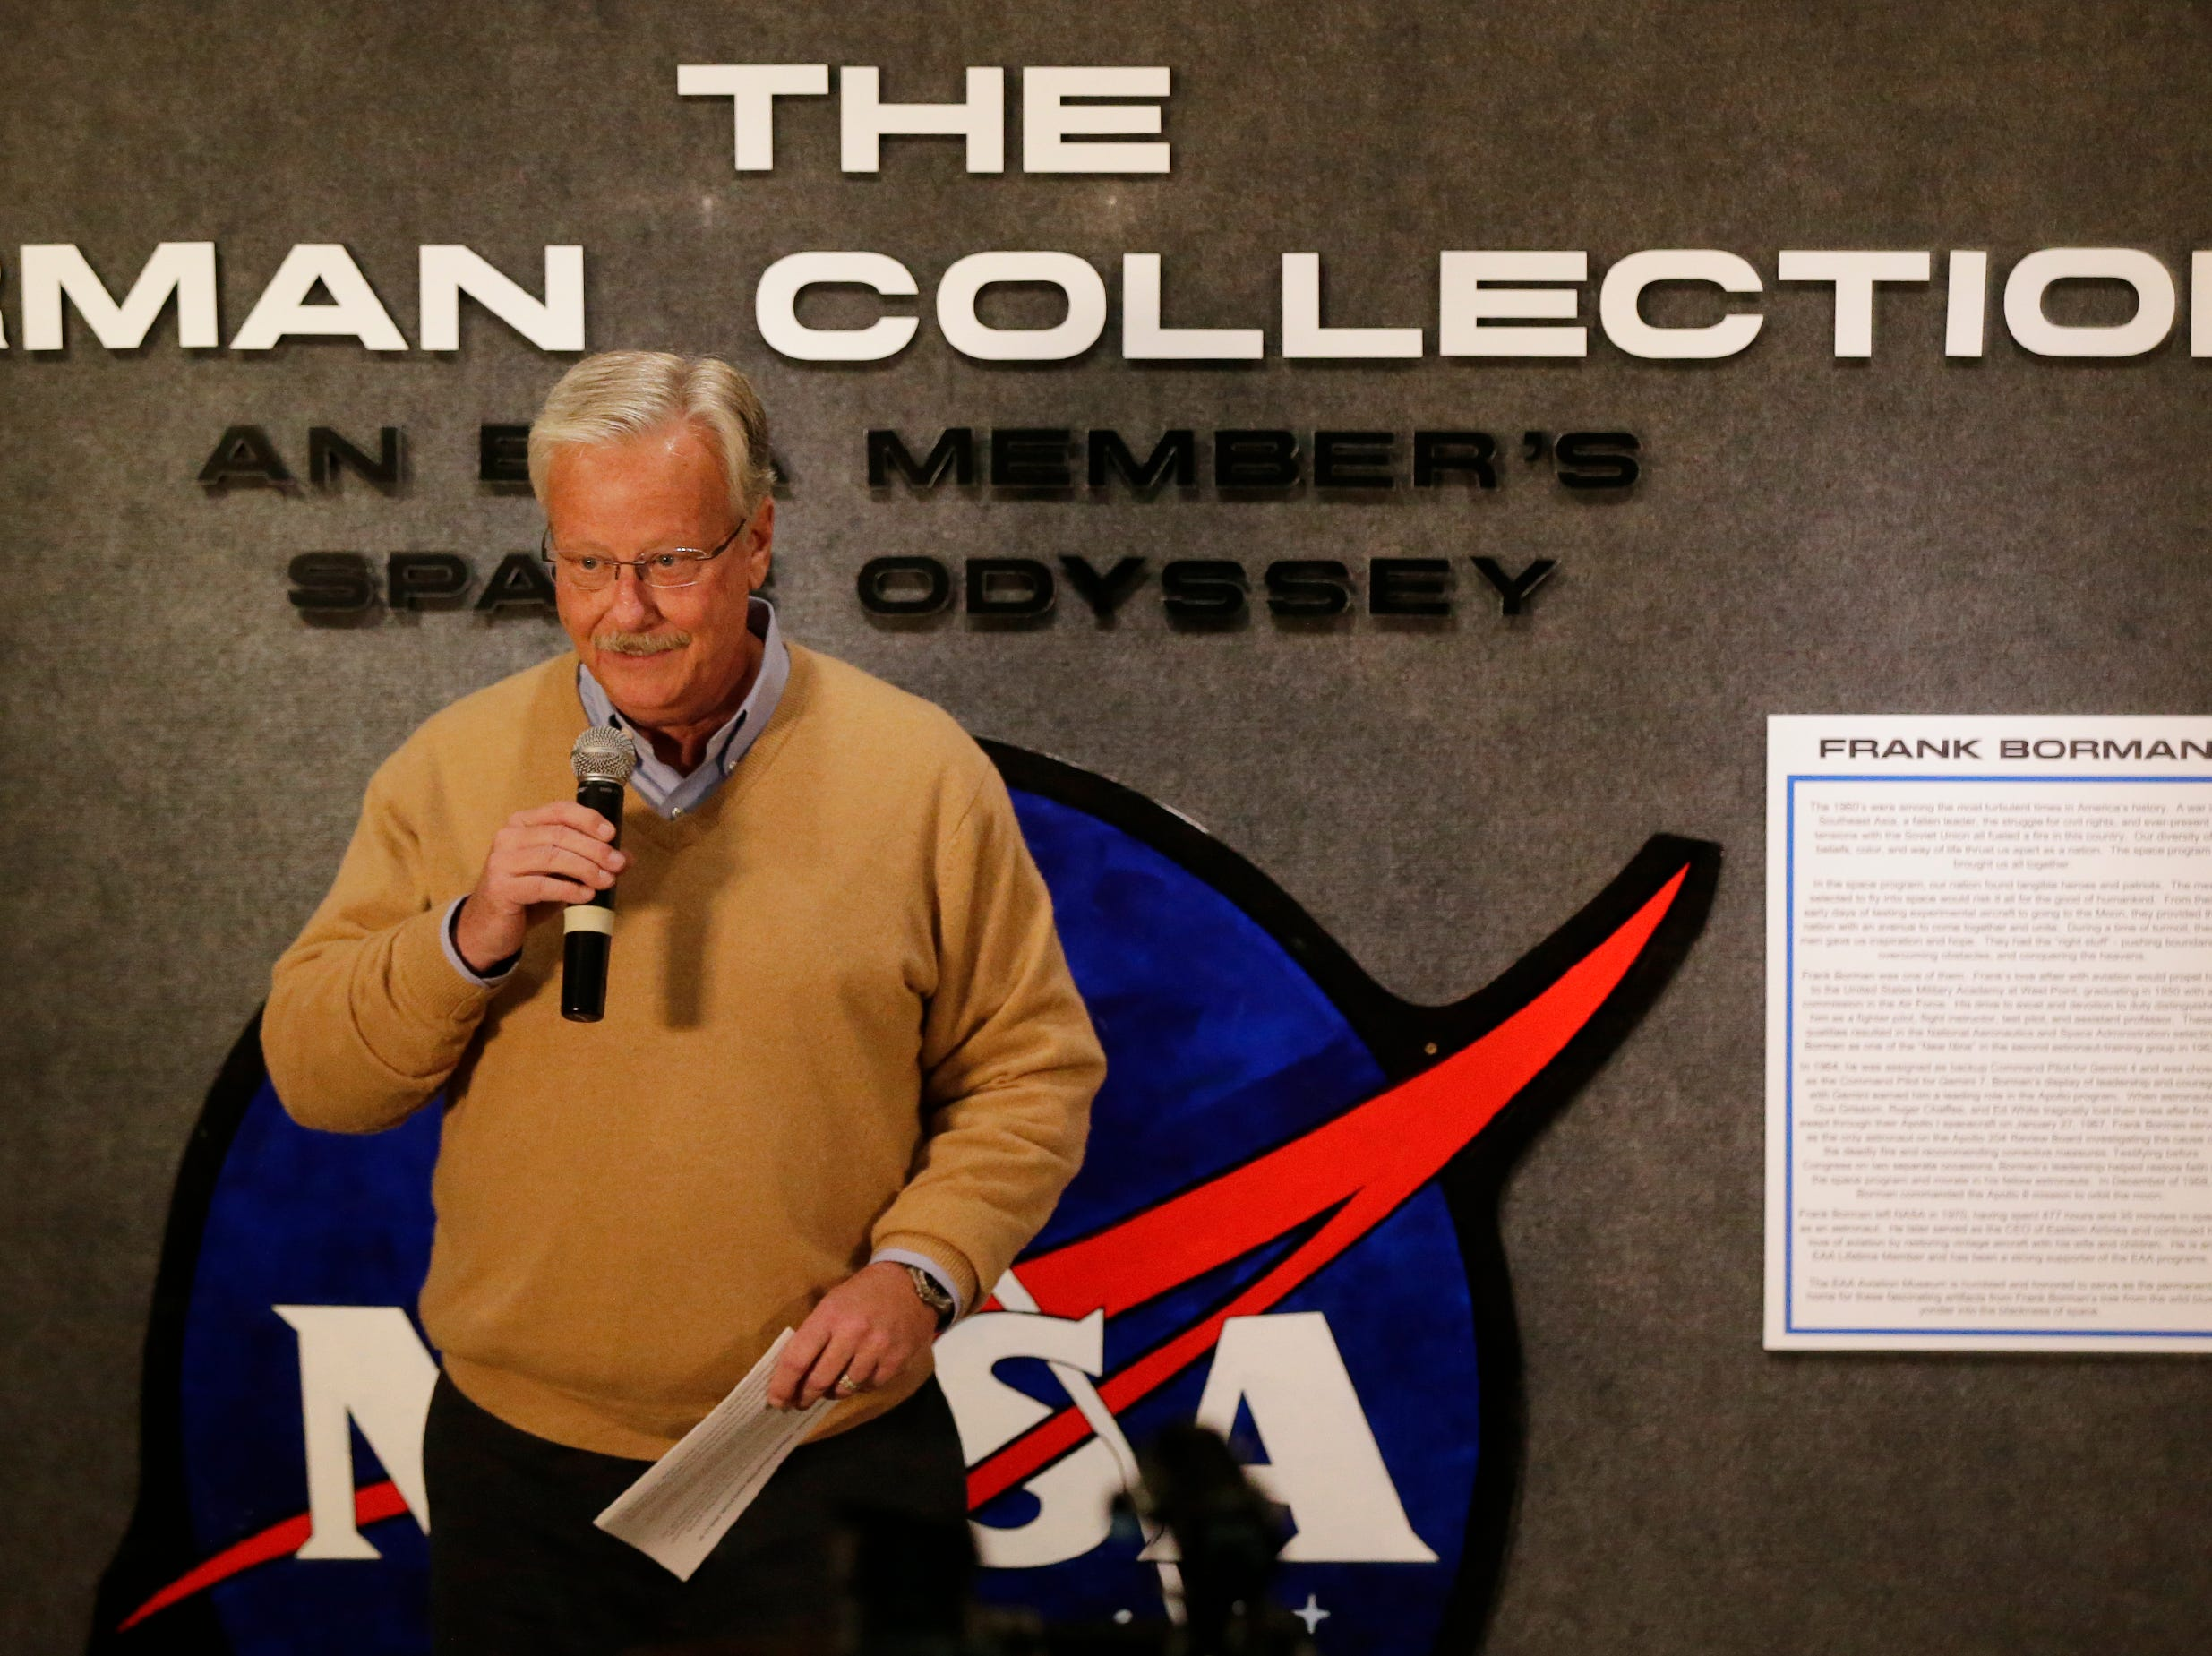 """EAA CEO/Chairman Jack Pelton introduced the collection and welcomed visitors.  The EAA Aviation Museum in Oshkosh, Wis. has opened """"The Borman Collection: An EAA Member's Space Odyssey,"""" an exhibit that features the personal archives and memorabilia of astronaut Frank Borman, who was on the leading edge of America's space program through the 1960s. The new exhibit was formally opened with a ribbon cutting by Borman on Friday, December 7, 2018.Joe Sienkiewicz/USA Today NETWORK-Wisconsin"""